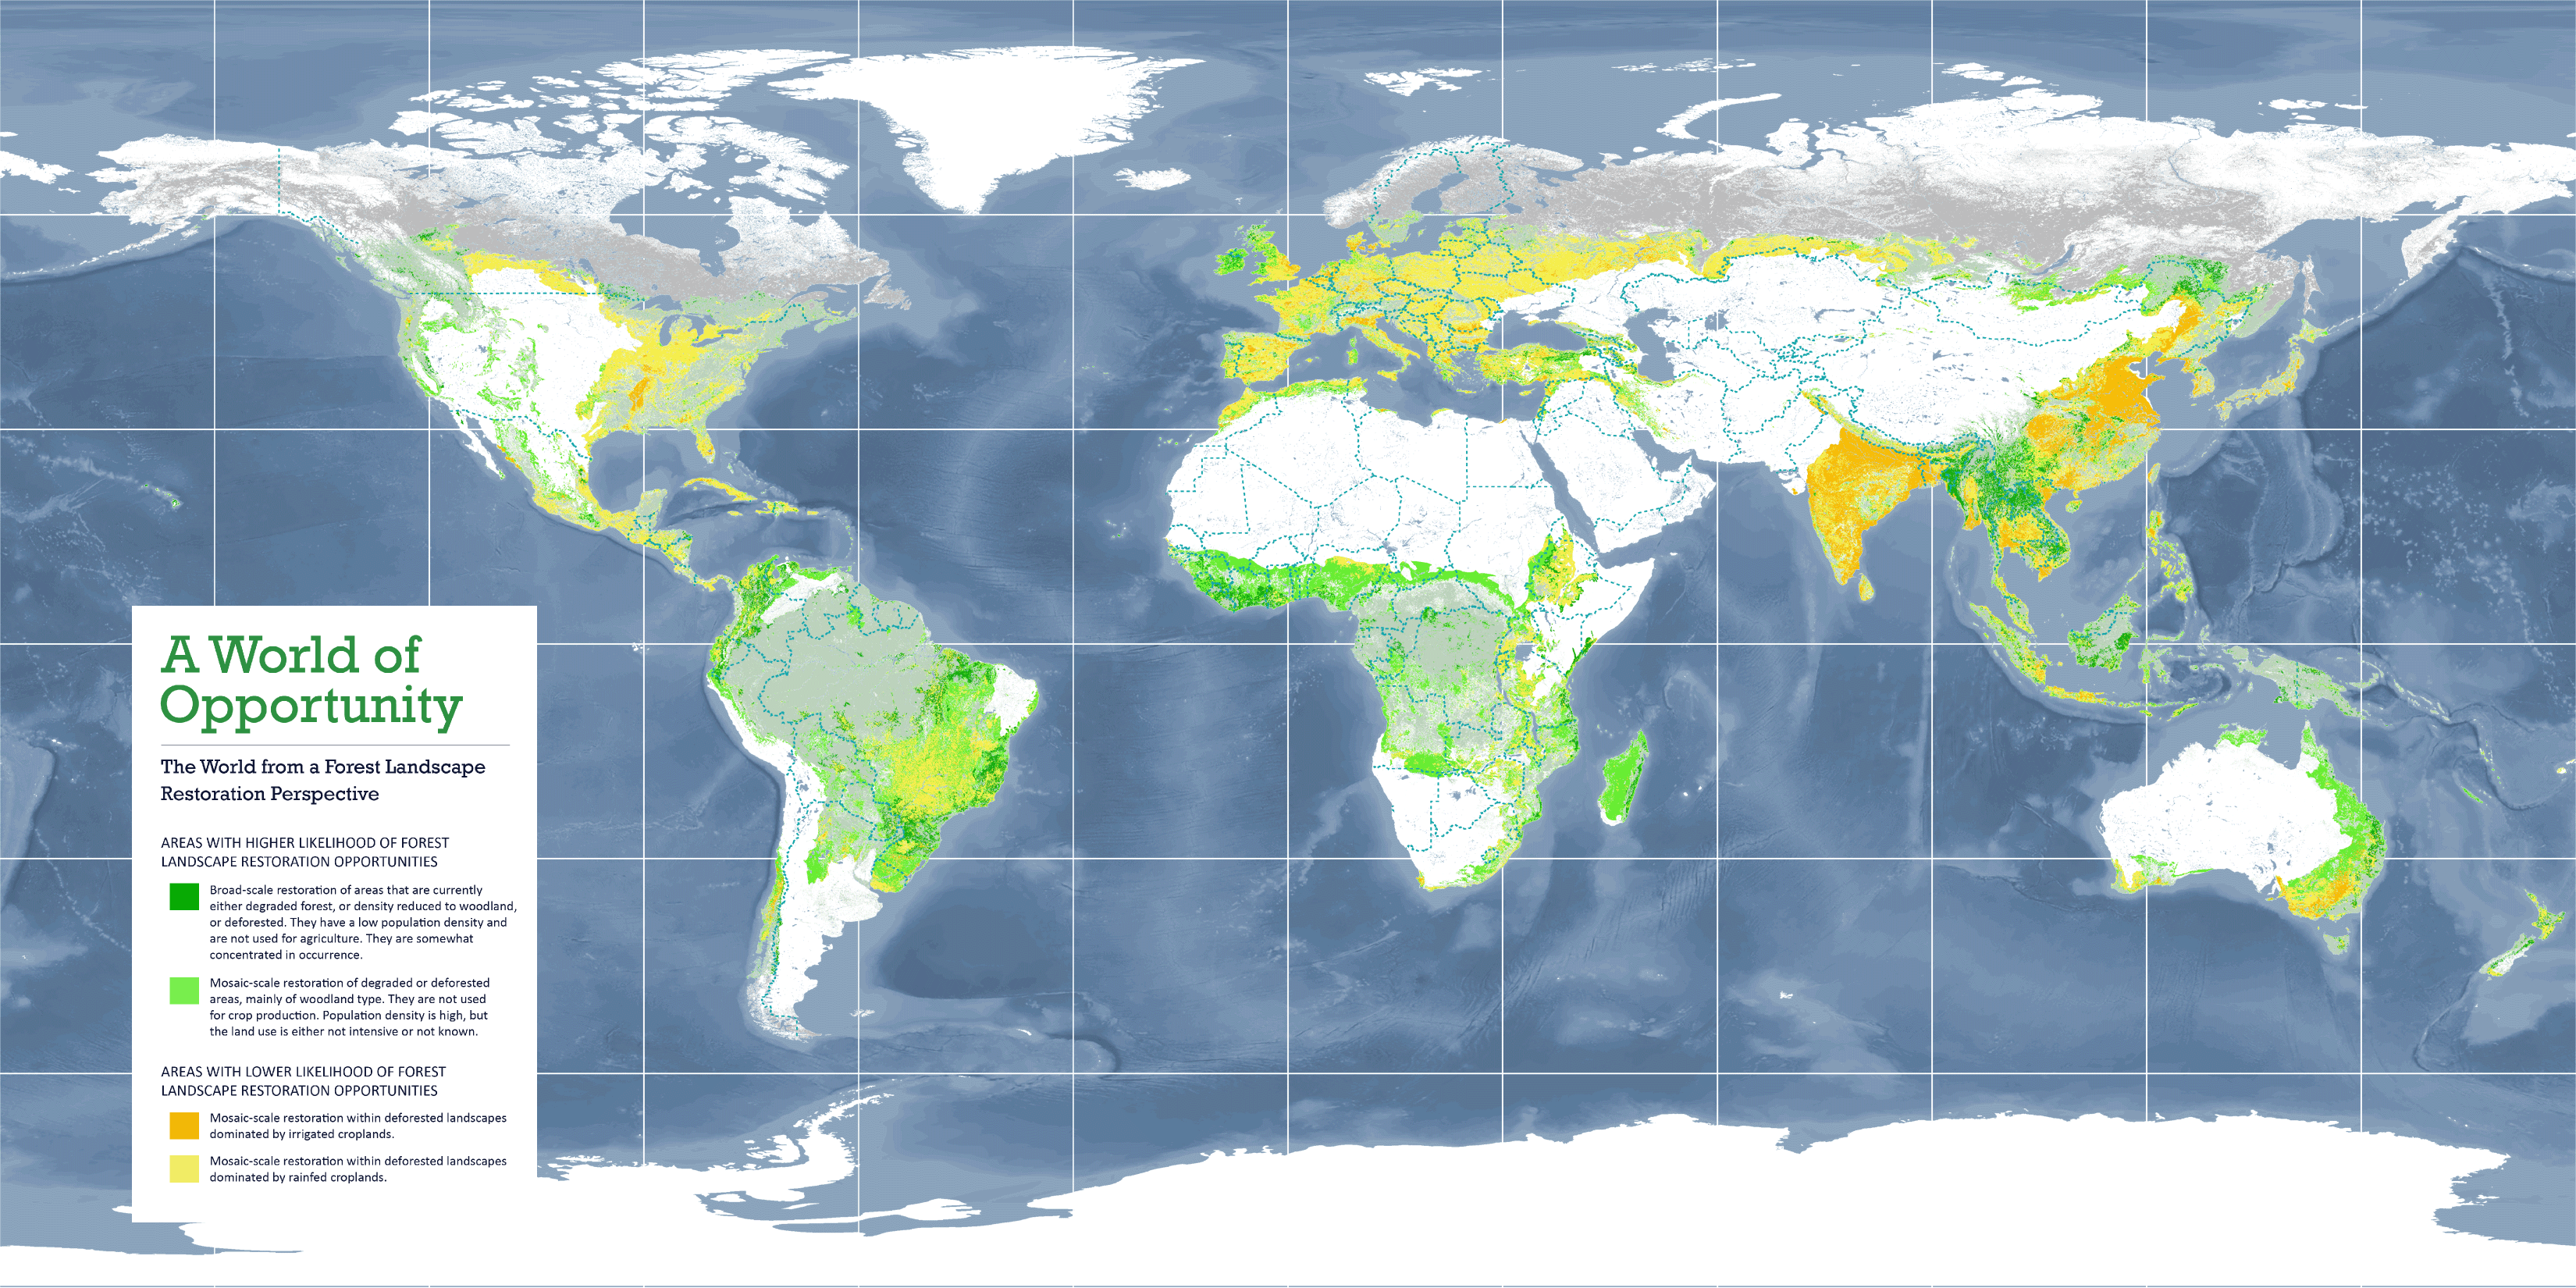 <p>The World from a Forest Landscape Restoration Perspective</p>